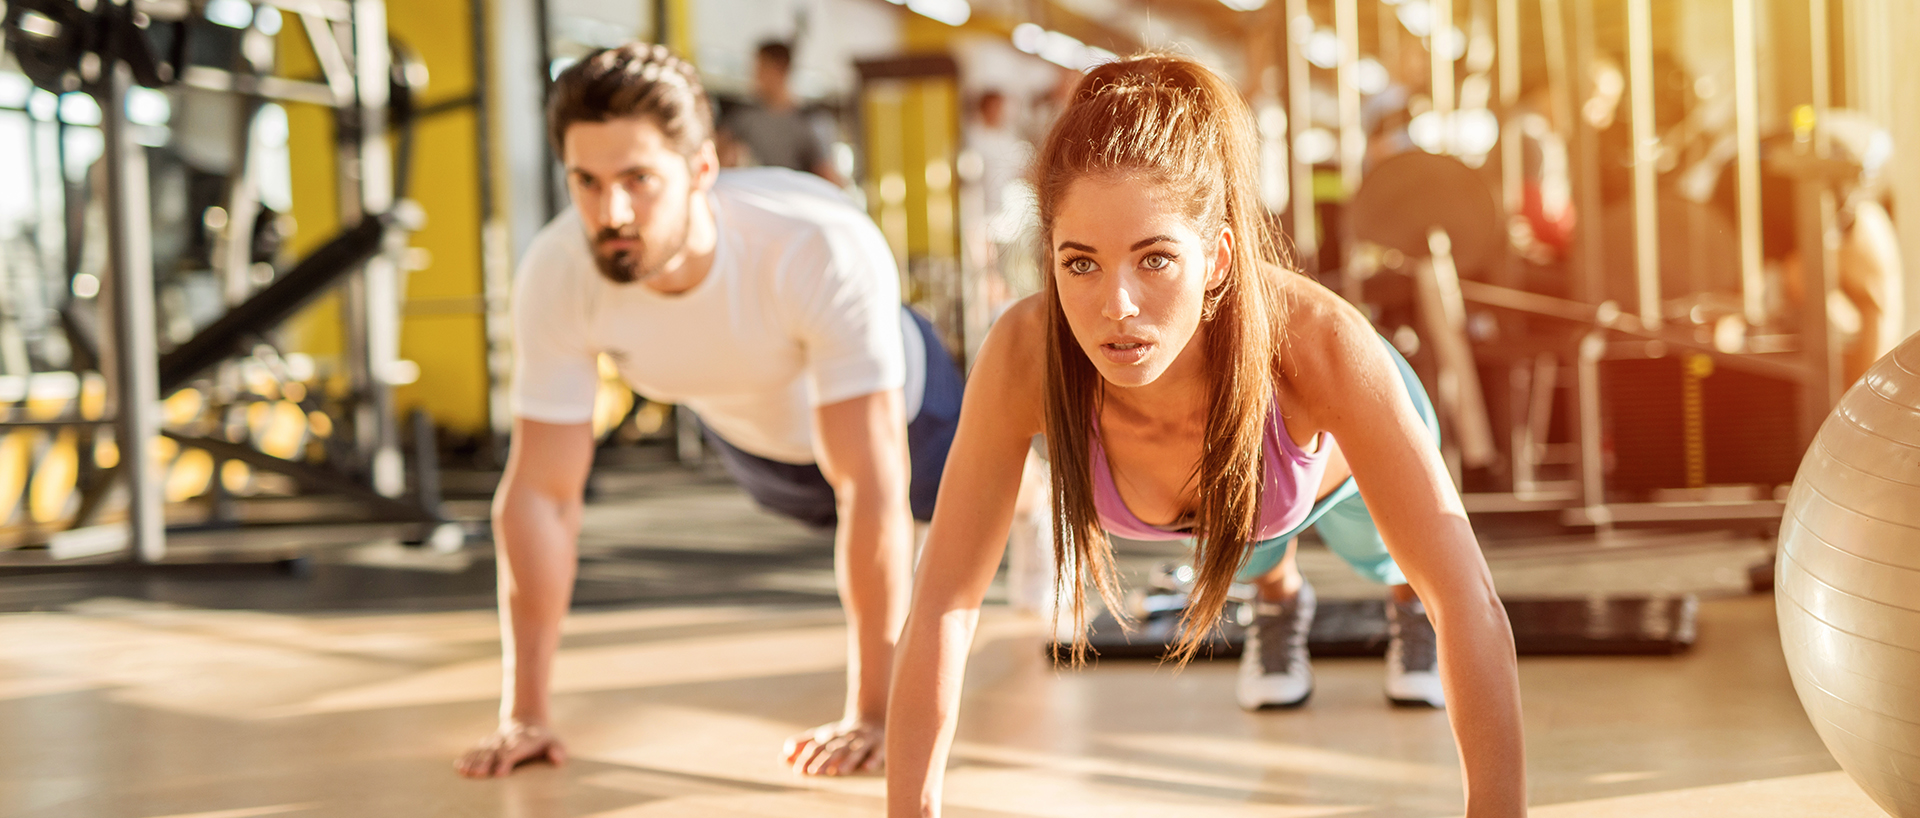 a man and a woman doing a push-ups in a gym.